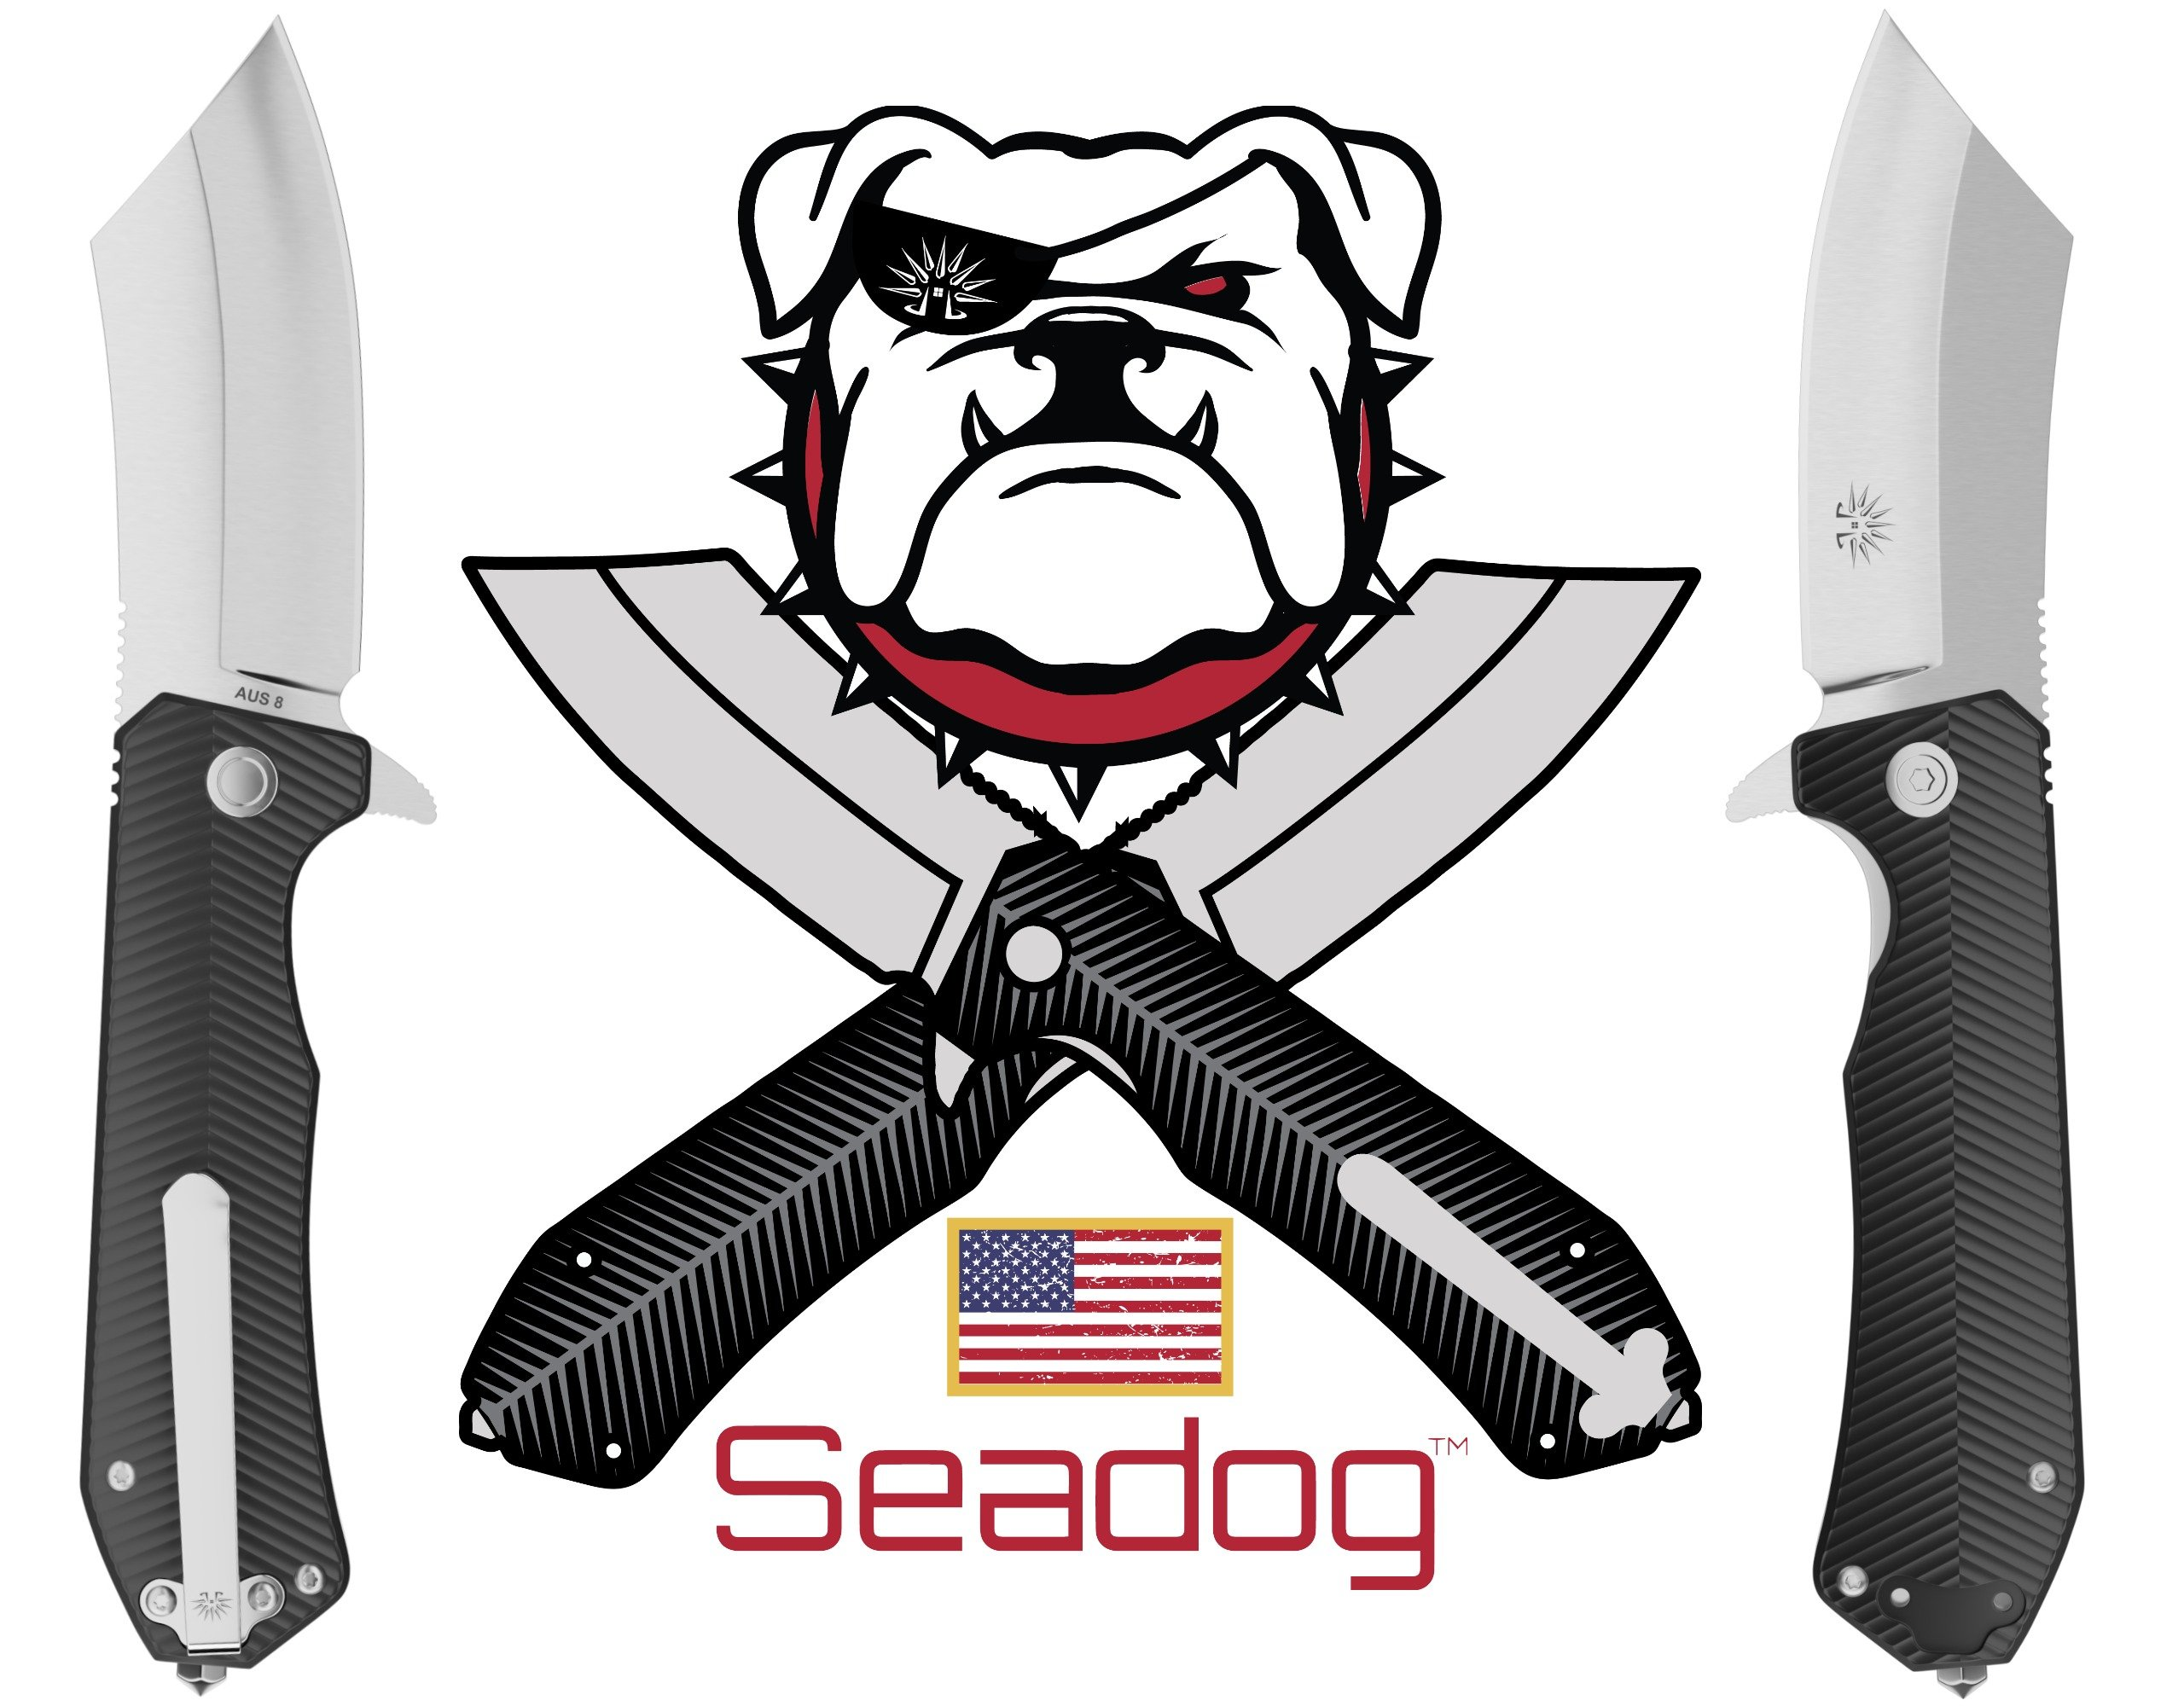 Off-Grid Knives - Seadog Folding Knife - Hard Use Everyday Carry EDC, Cryo Japanese AUS8 Blade Steel, Ergonomic G10 Scales, Tip-Up Left or Right Deep Pocket Carry, Tungsten Carbide Glass Breaker by Off-Grid Knives (Image #9)